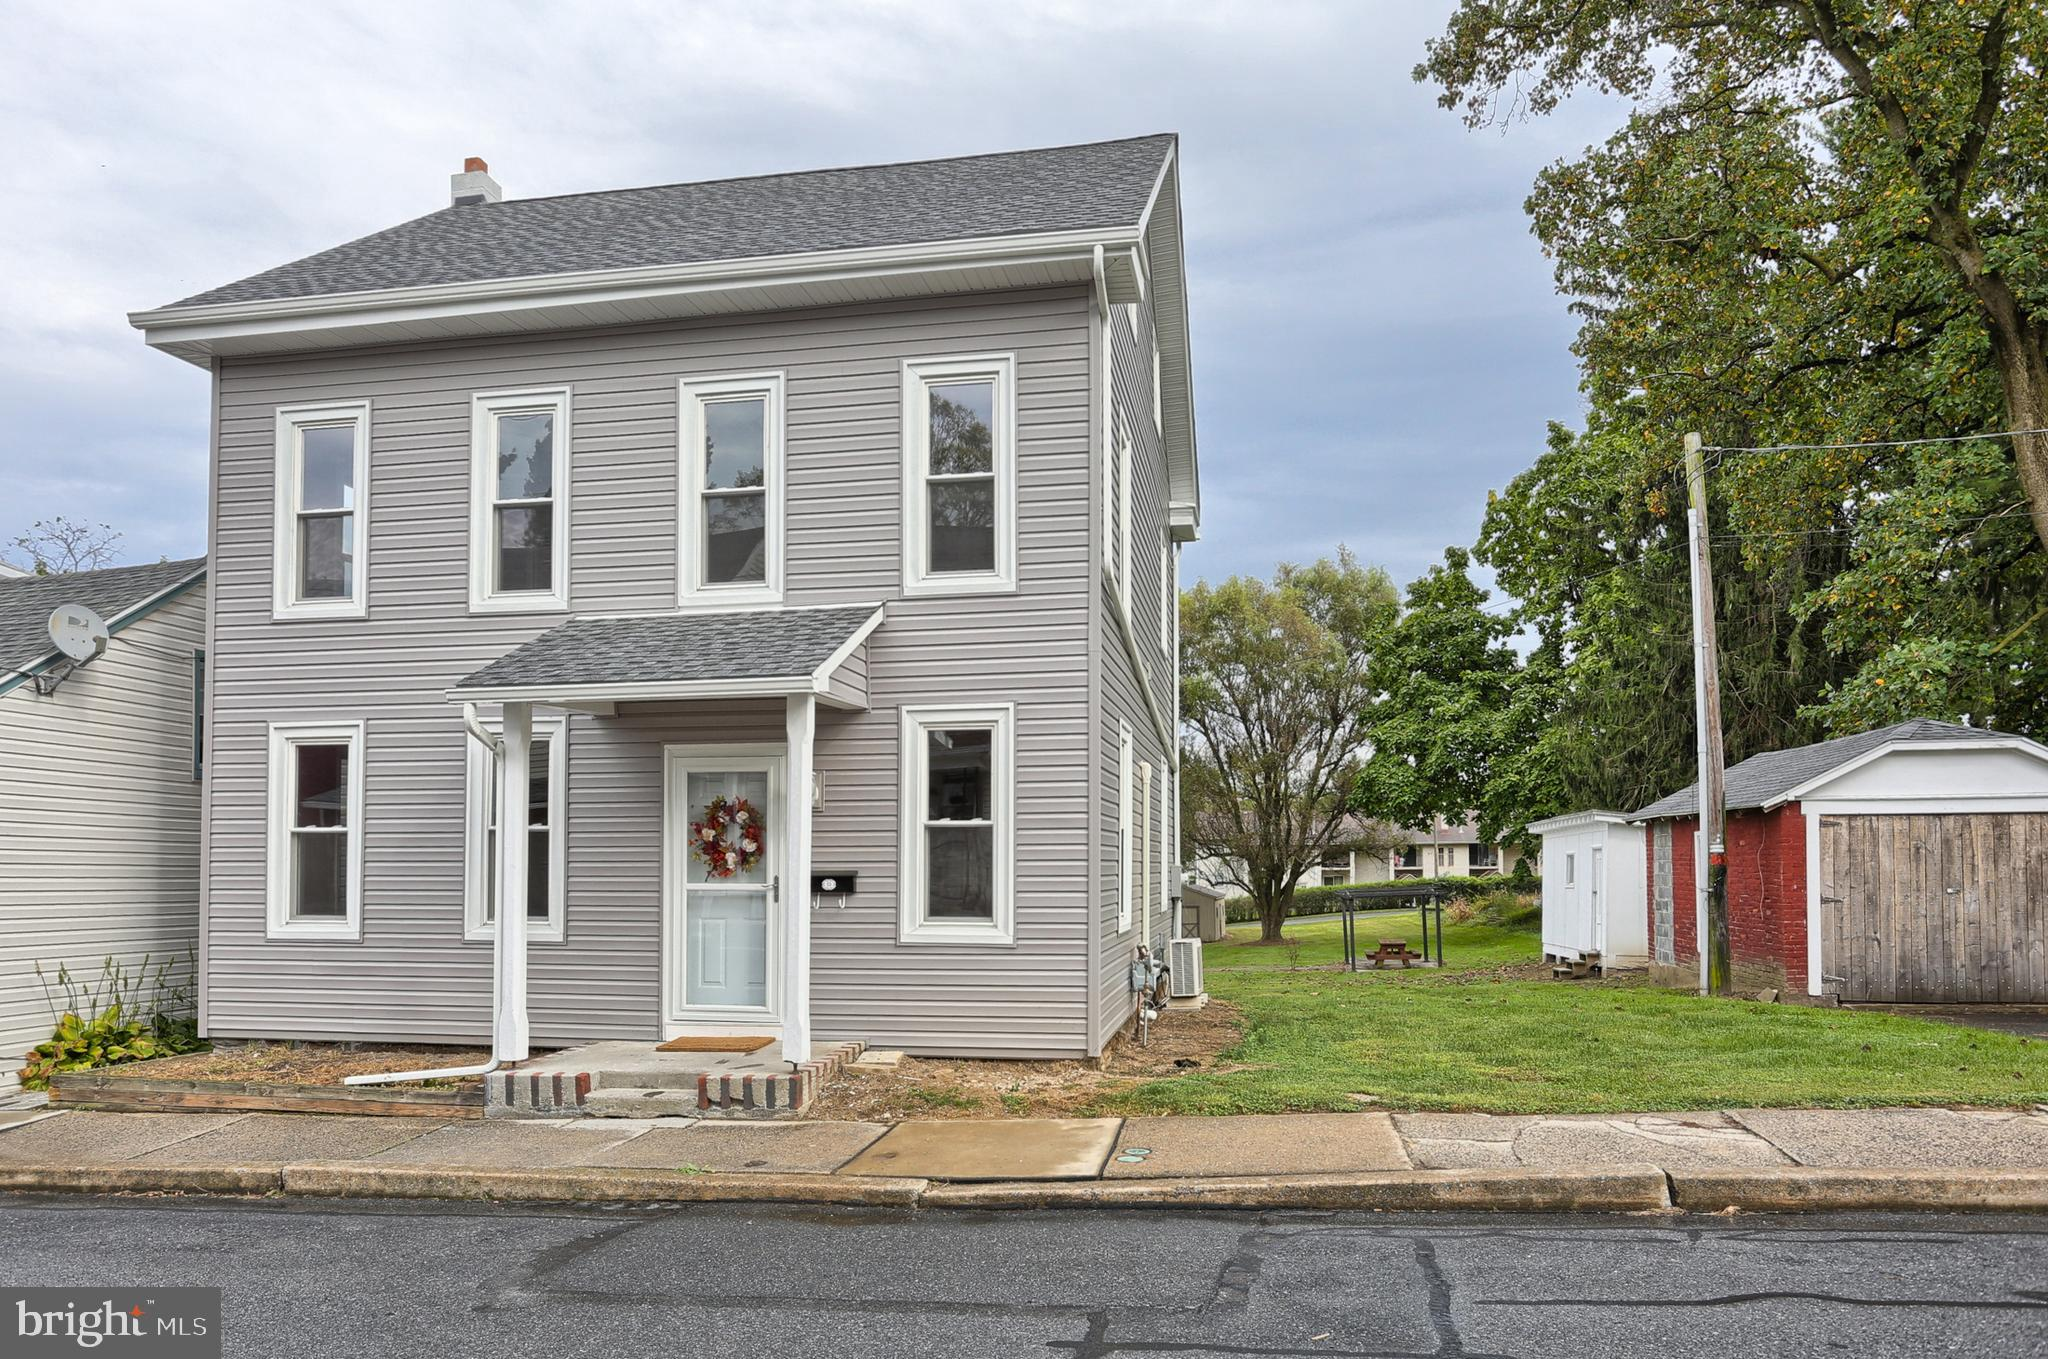 45 S FRONT STREET, WOMELSDORF, PA 19567